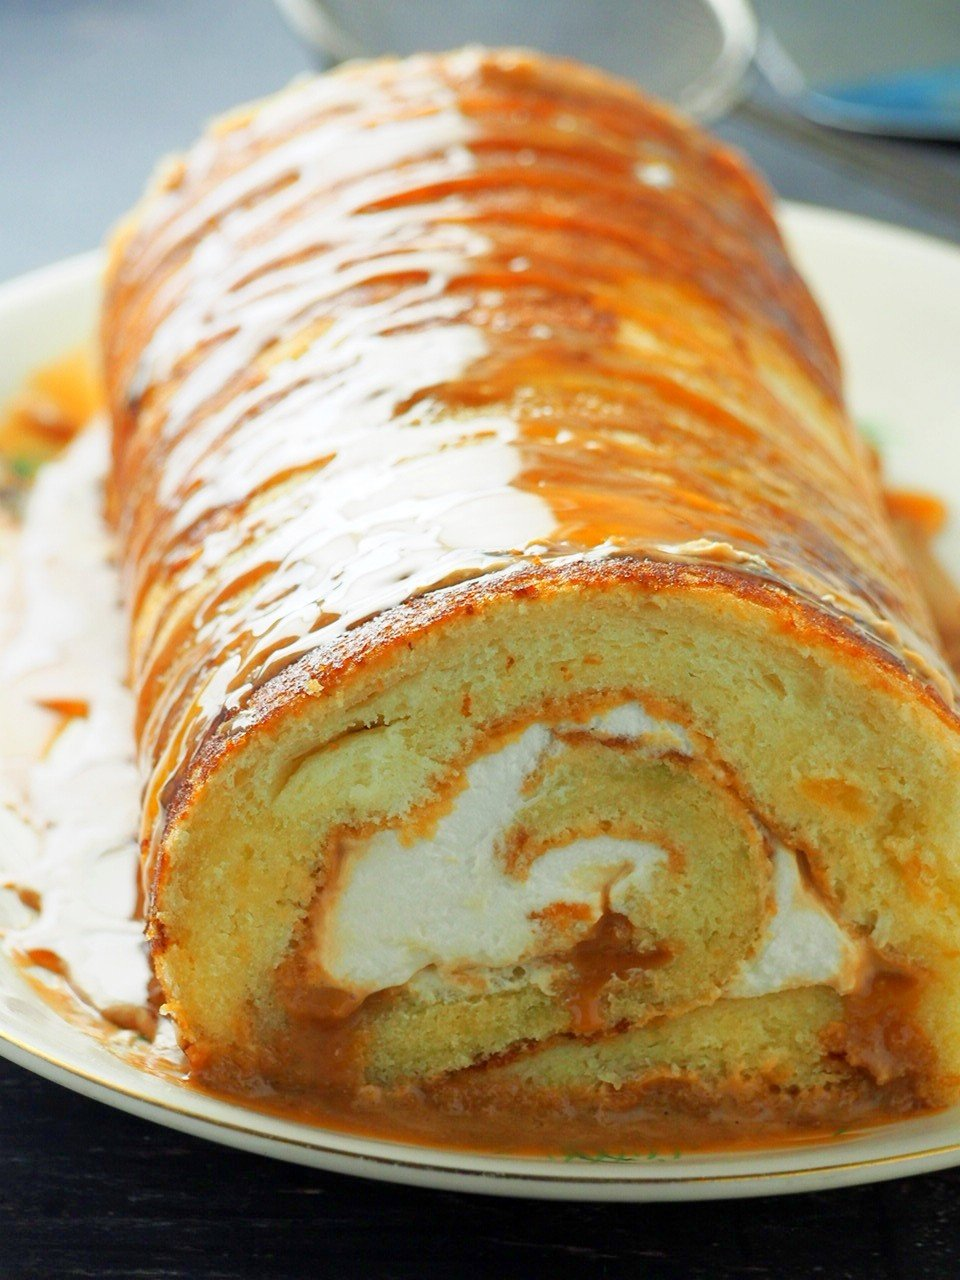 Dulce de leche cake roll on a serving plate.